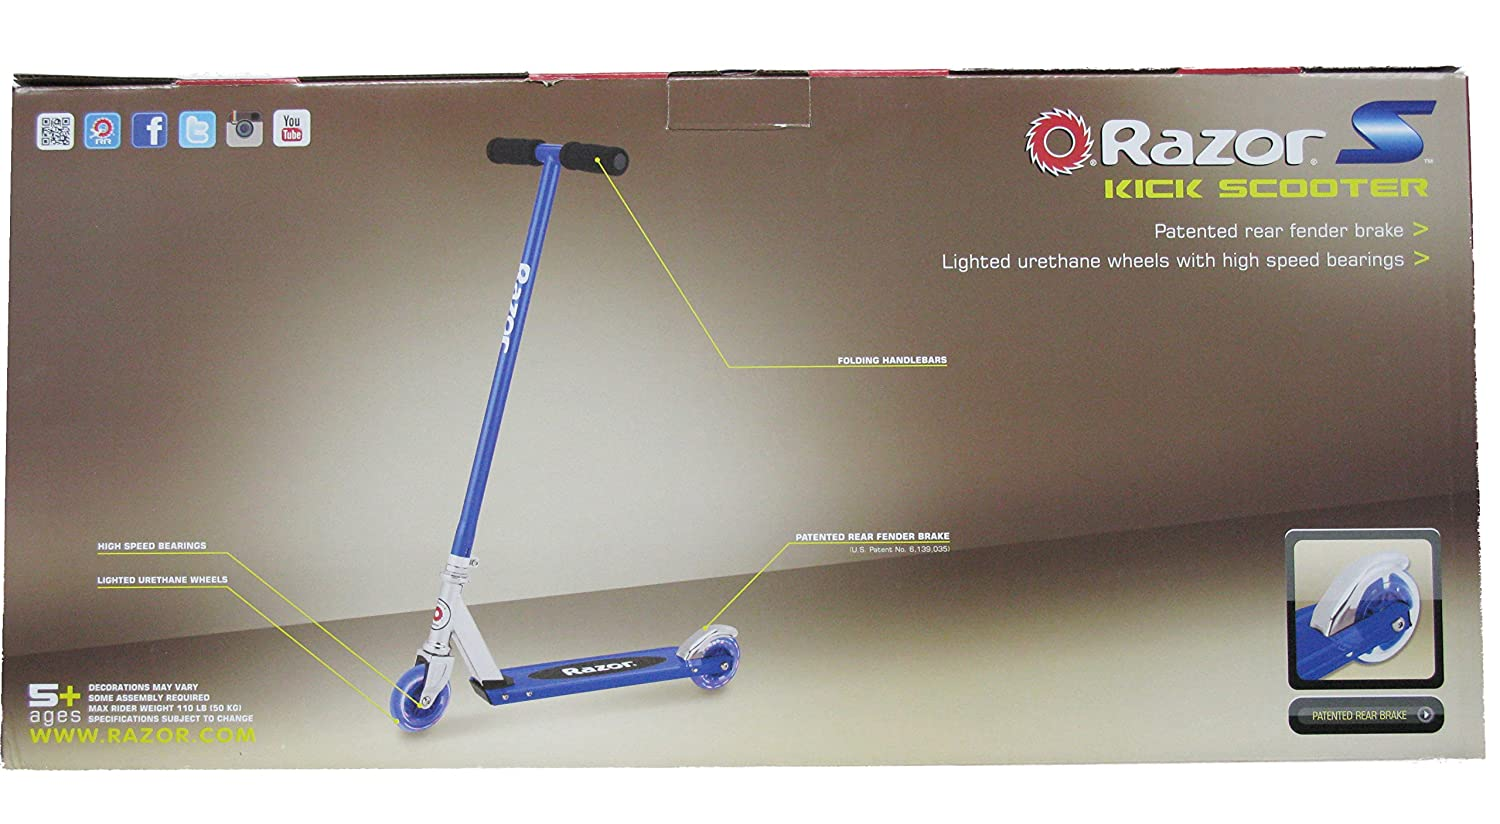 Razor S Light Up Wheels Kick Scooter Blue Green Or Purple Blue